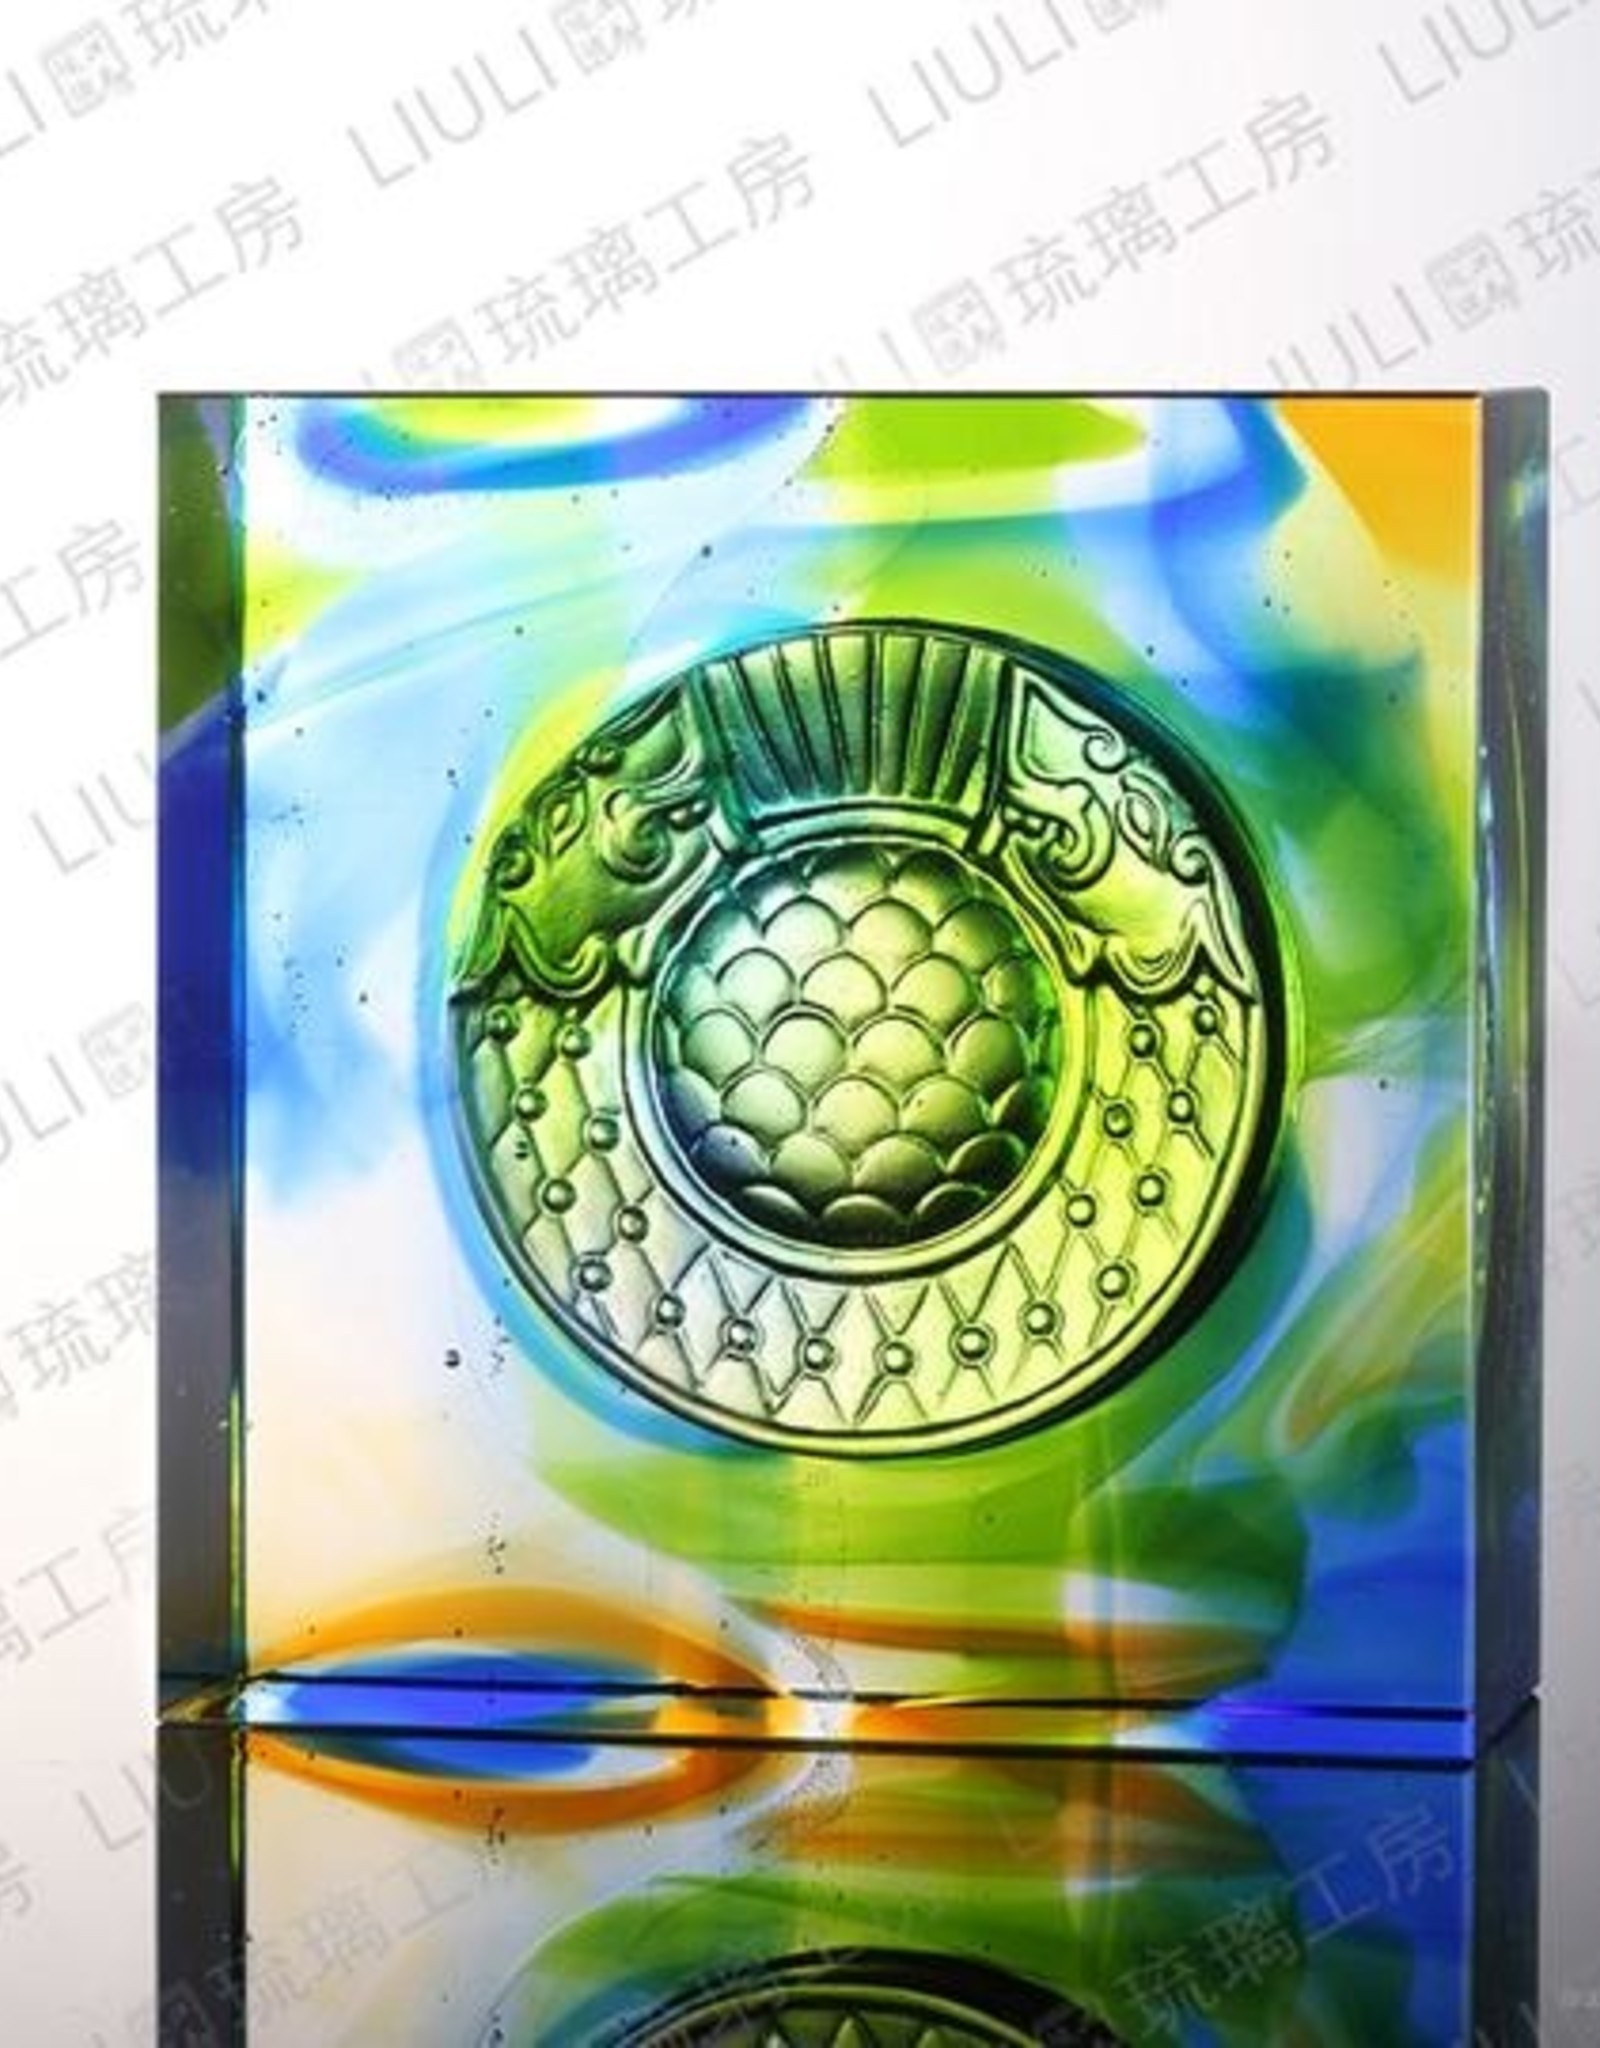 LIULI Crystal Art Crystal Mythical Creature Paperweight, Dragon Fish Protector, Mixed Colors